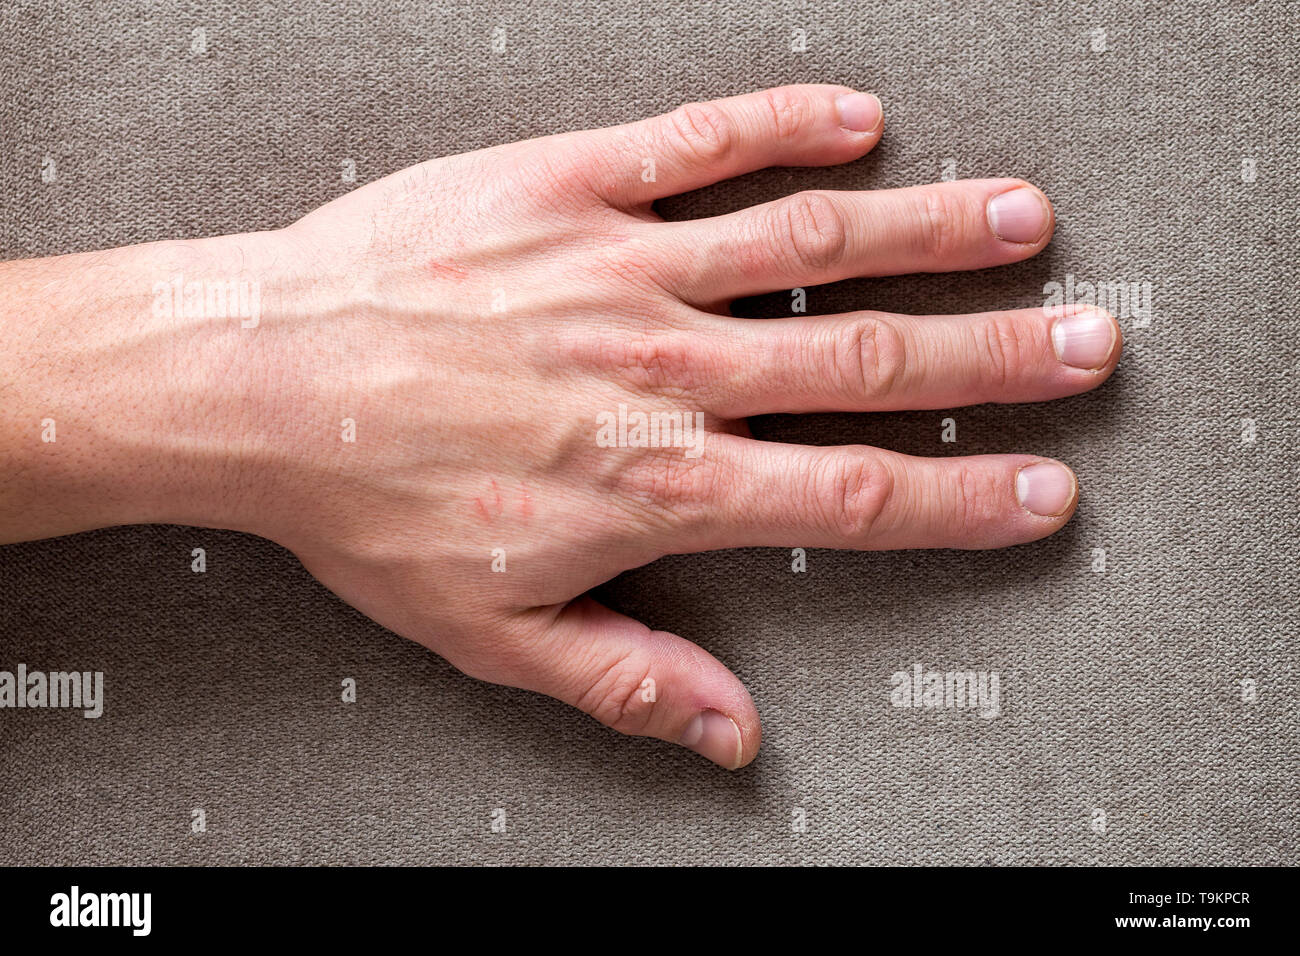 Close-up of male masculine worker hand with rough skin and short fingernails resting on flat copy space background, top view. Manual labor and hands c - Stock Image